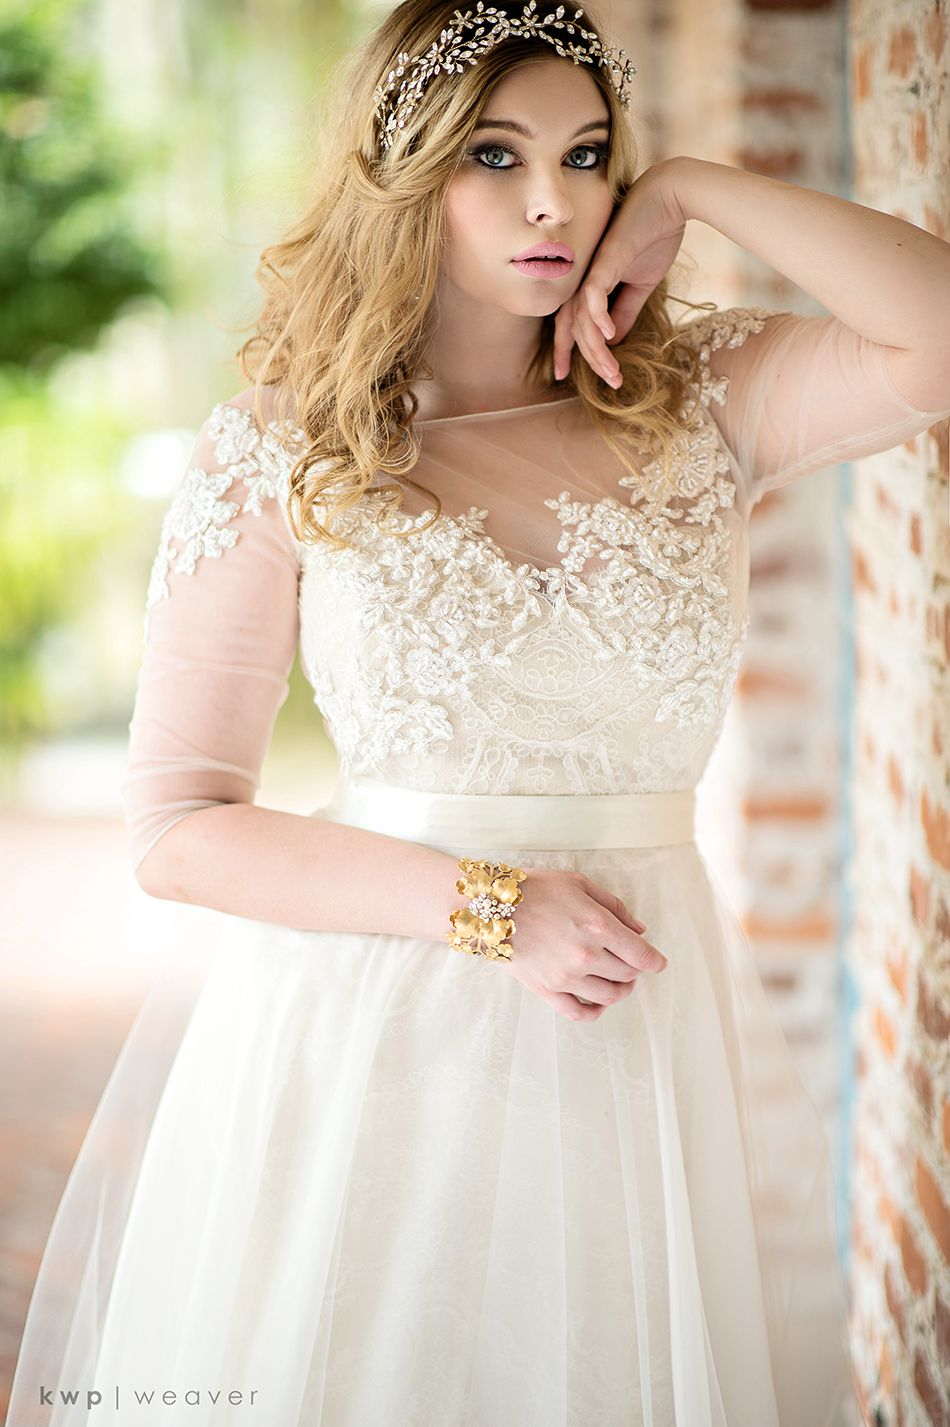 Marisa wedding dress  Solutions Bridal teamed up with photographer kristenweaver simone